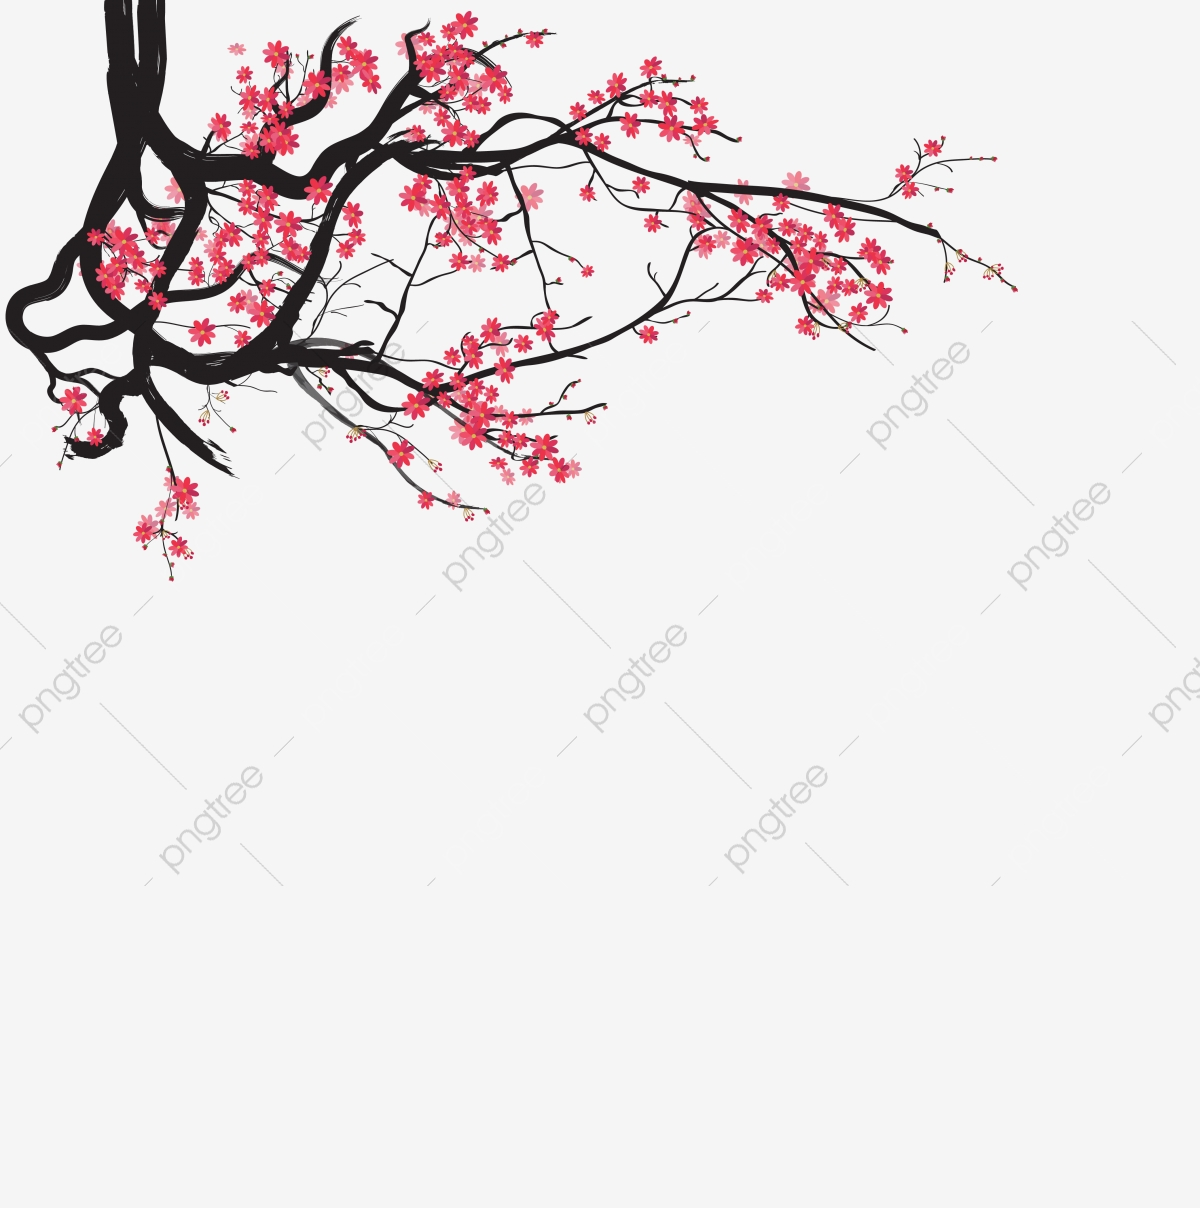 Watercolor Sakura Frame Background With Blossom Cherry Tree